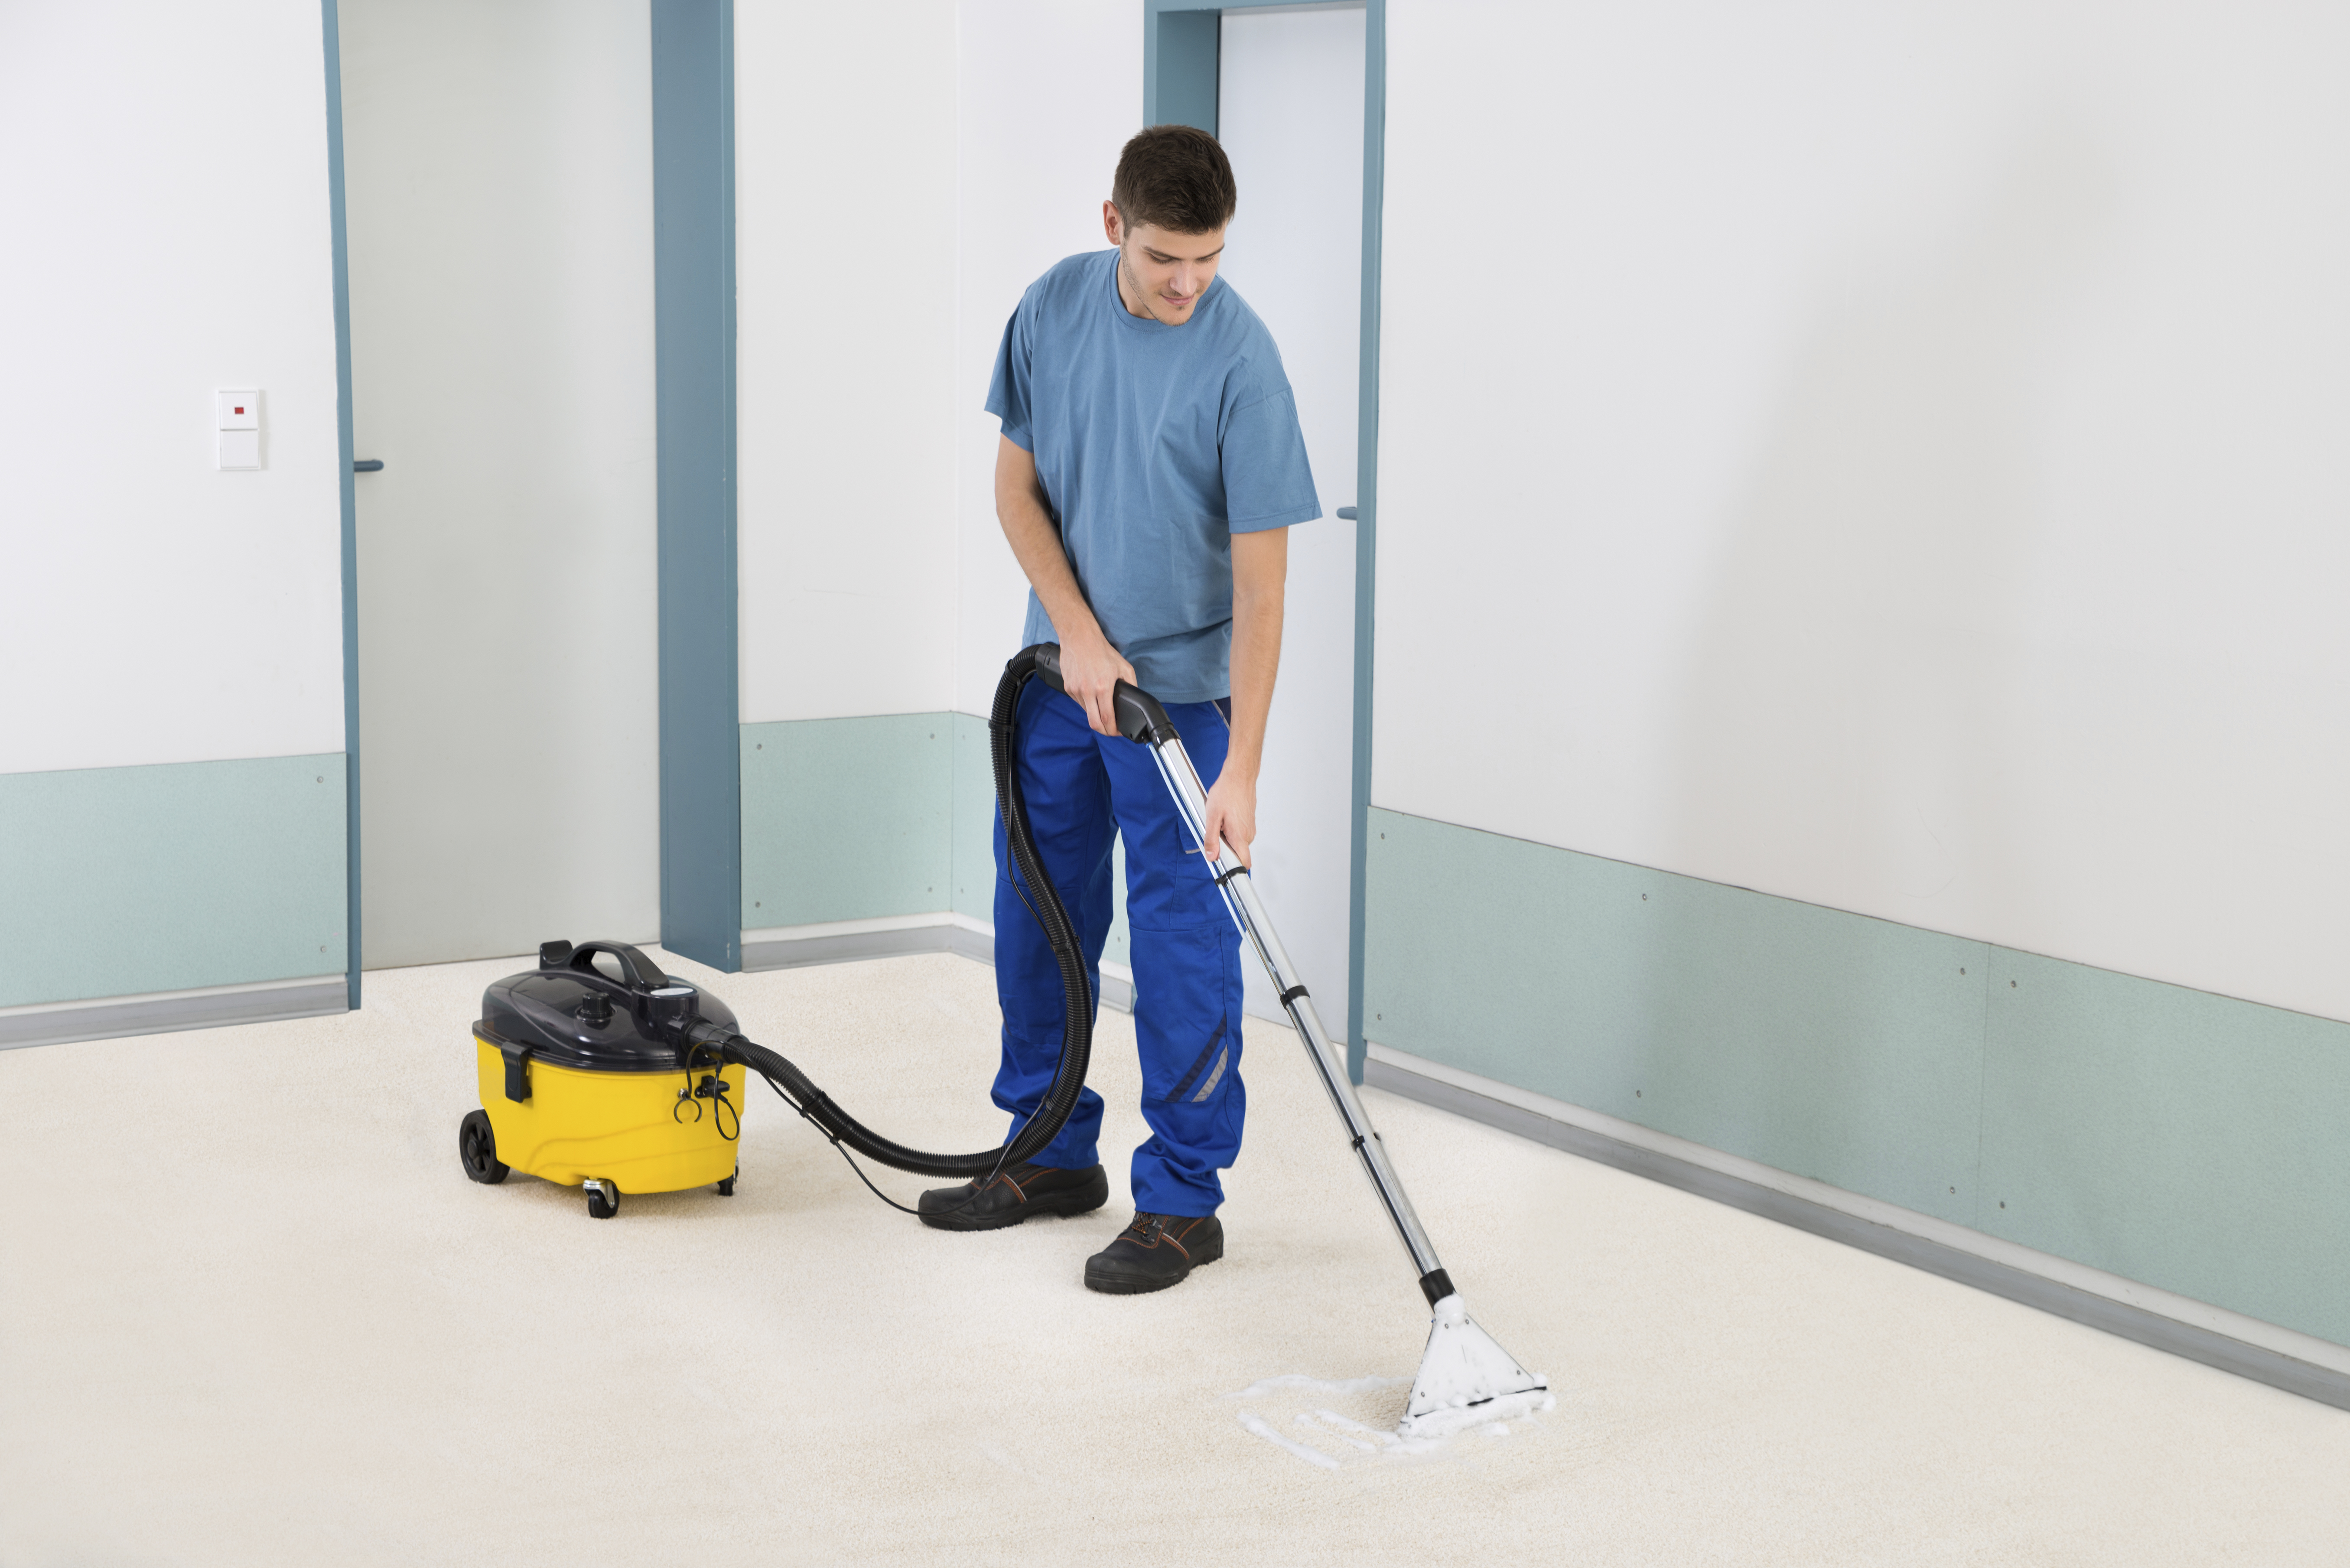 Commercial Carpet Cleaning Services For Your Office